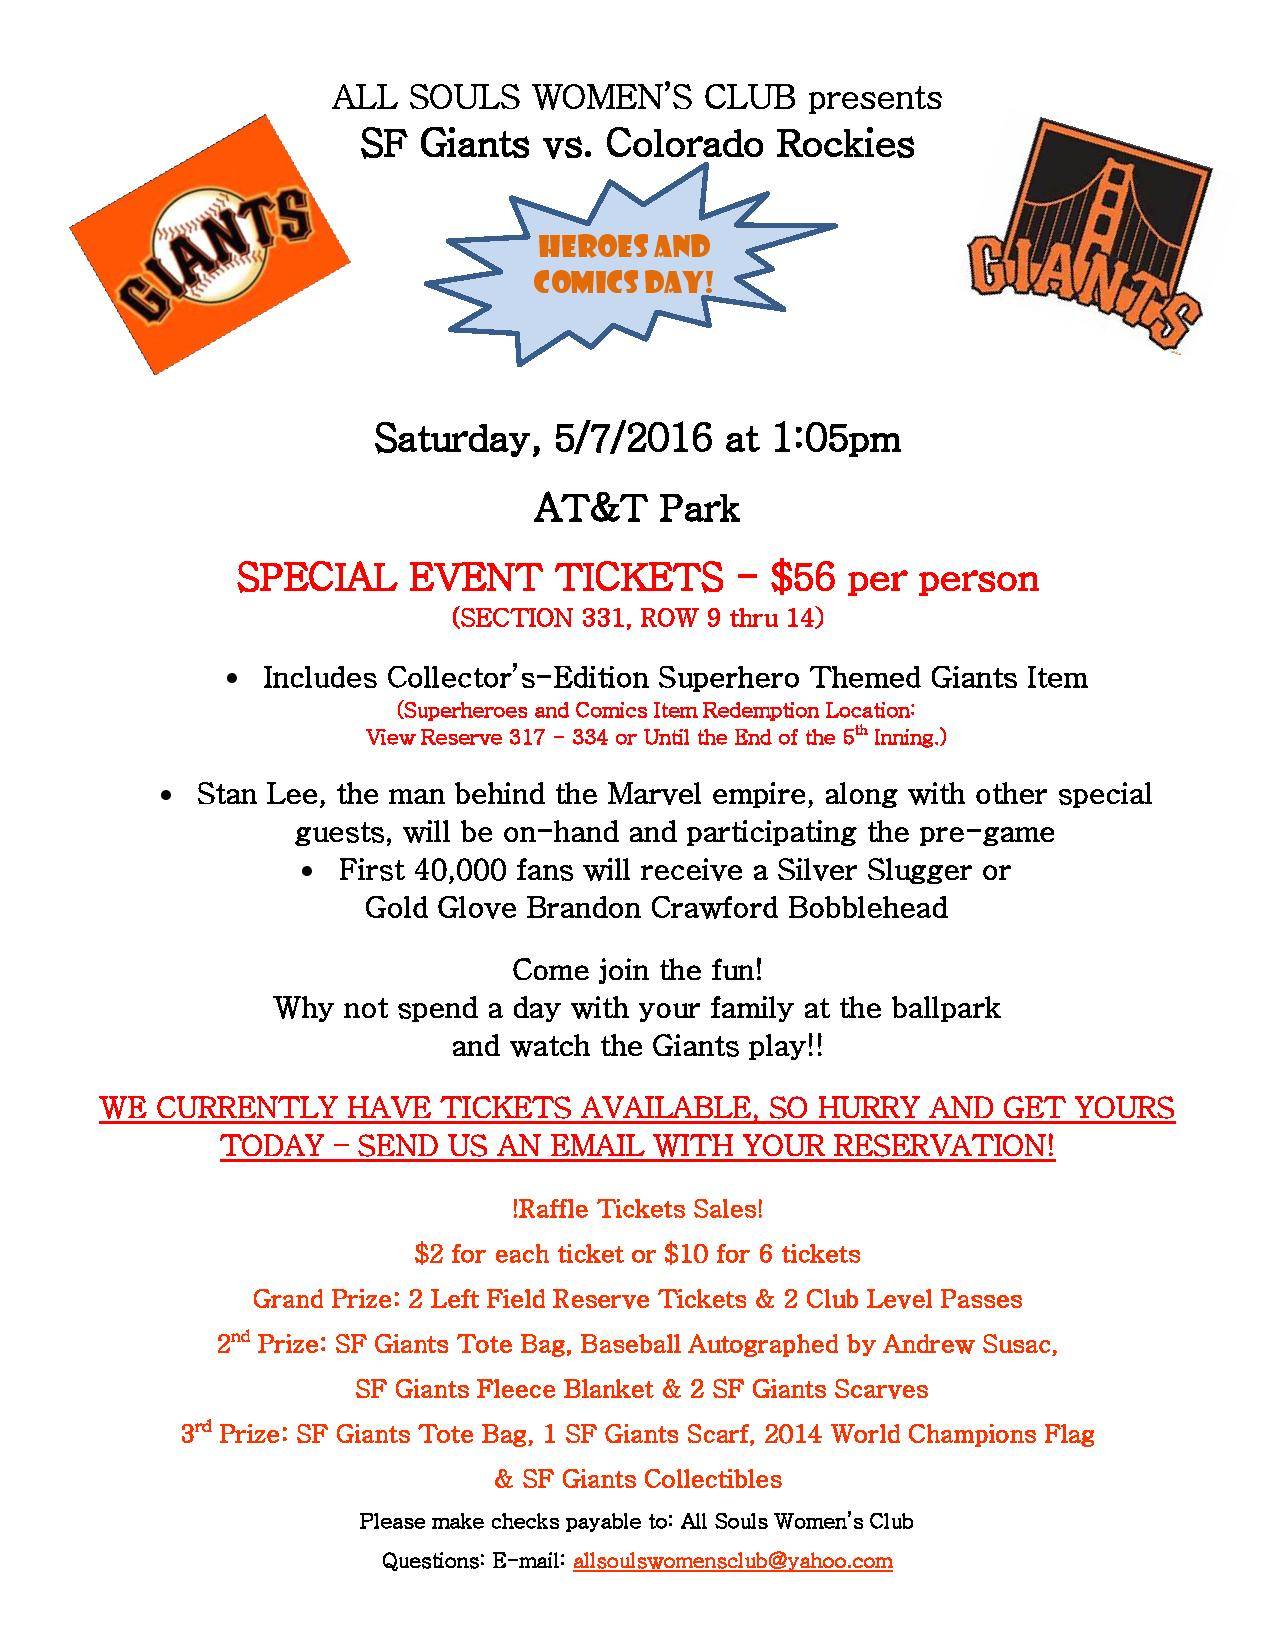 2016 SF Giants Fundraiser Flyer ASWC_03.3.16-page-001